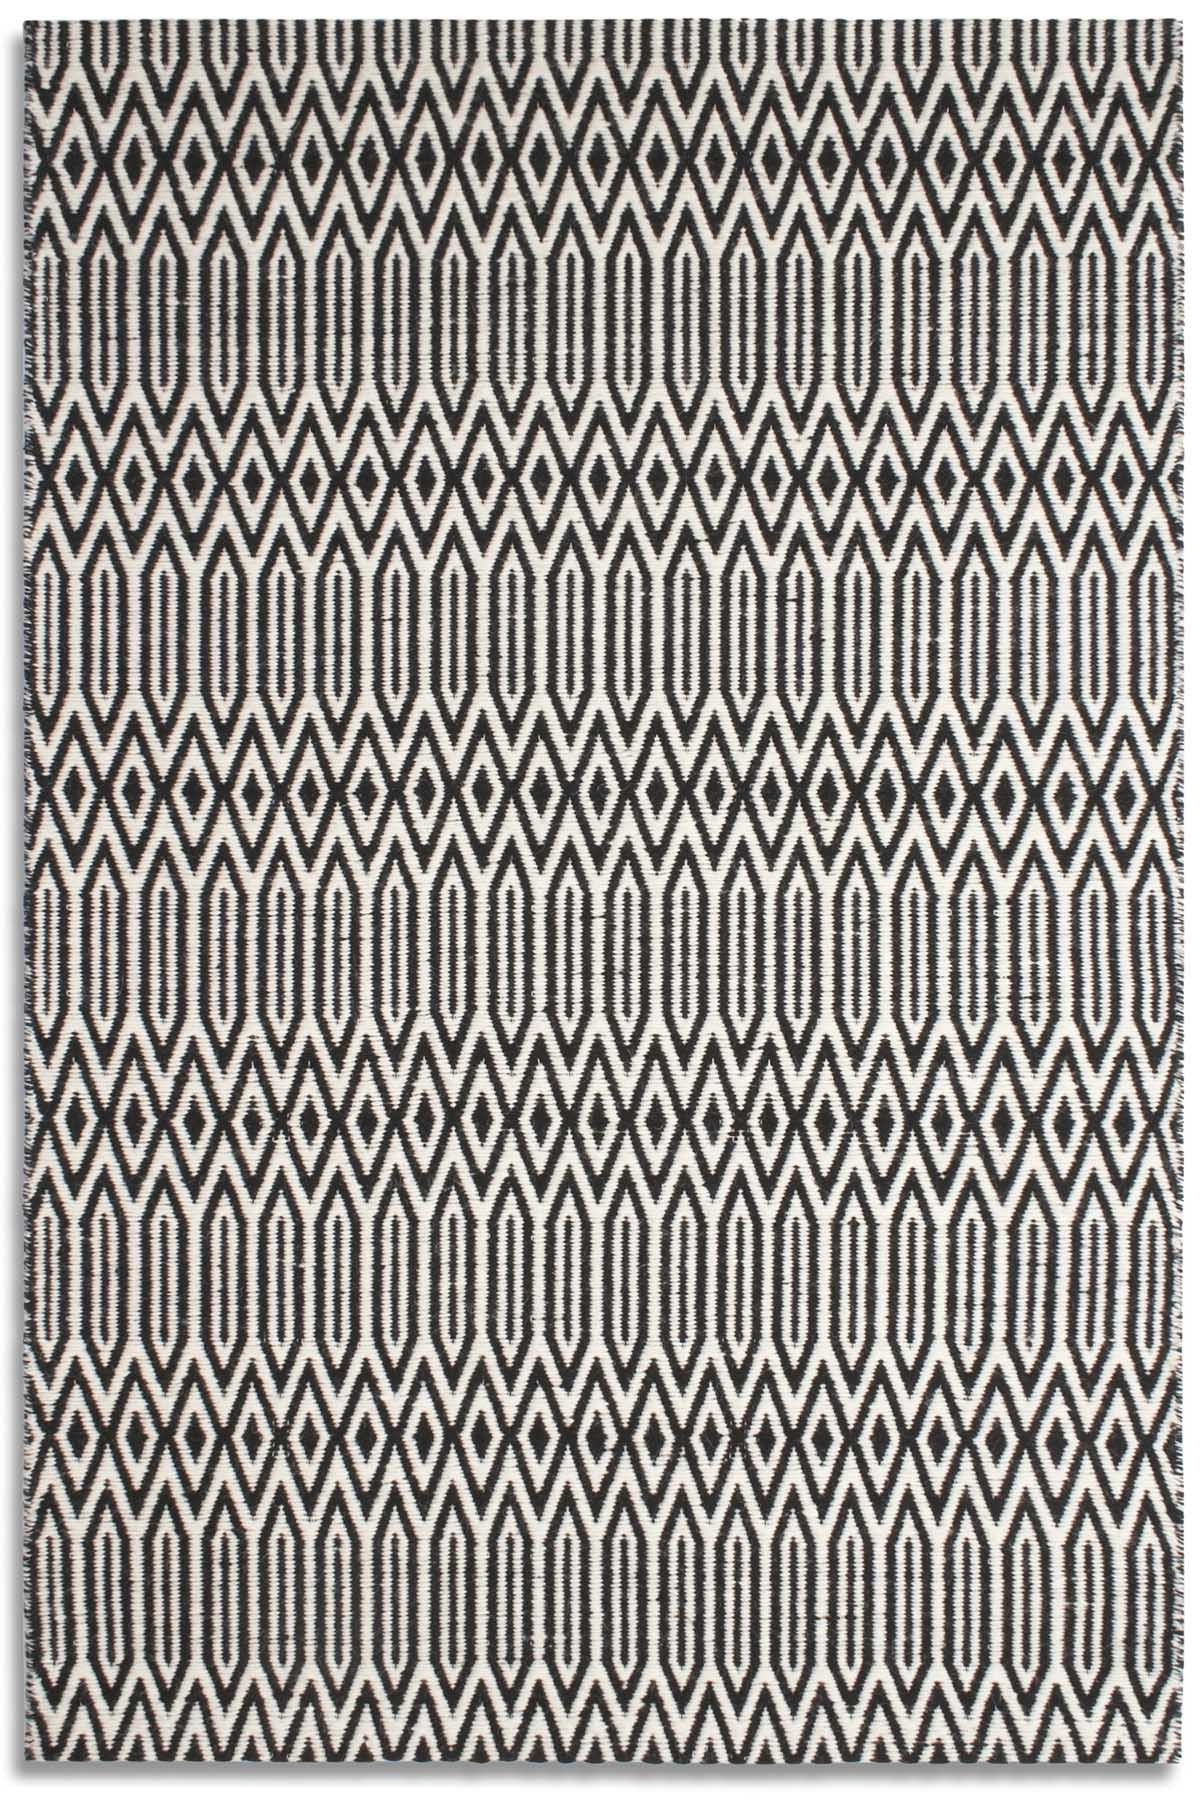 Serengeti black white rug range